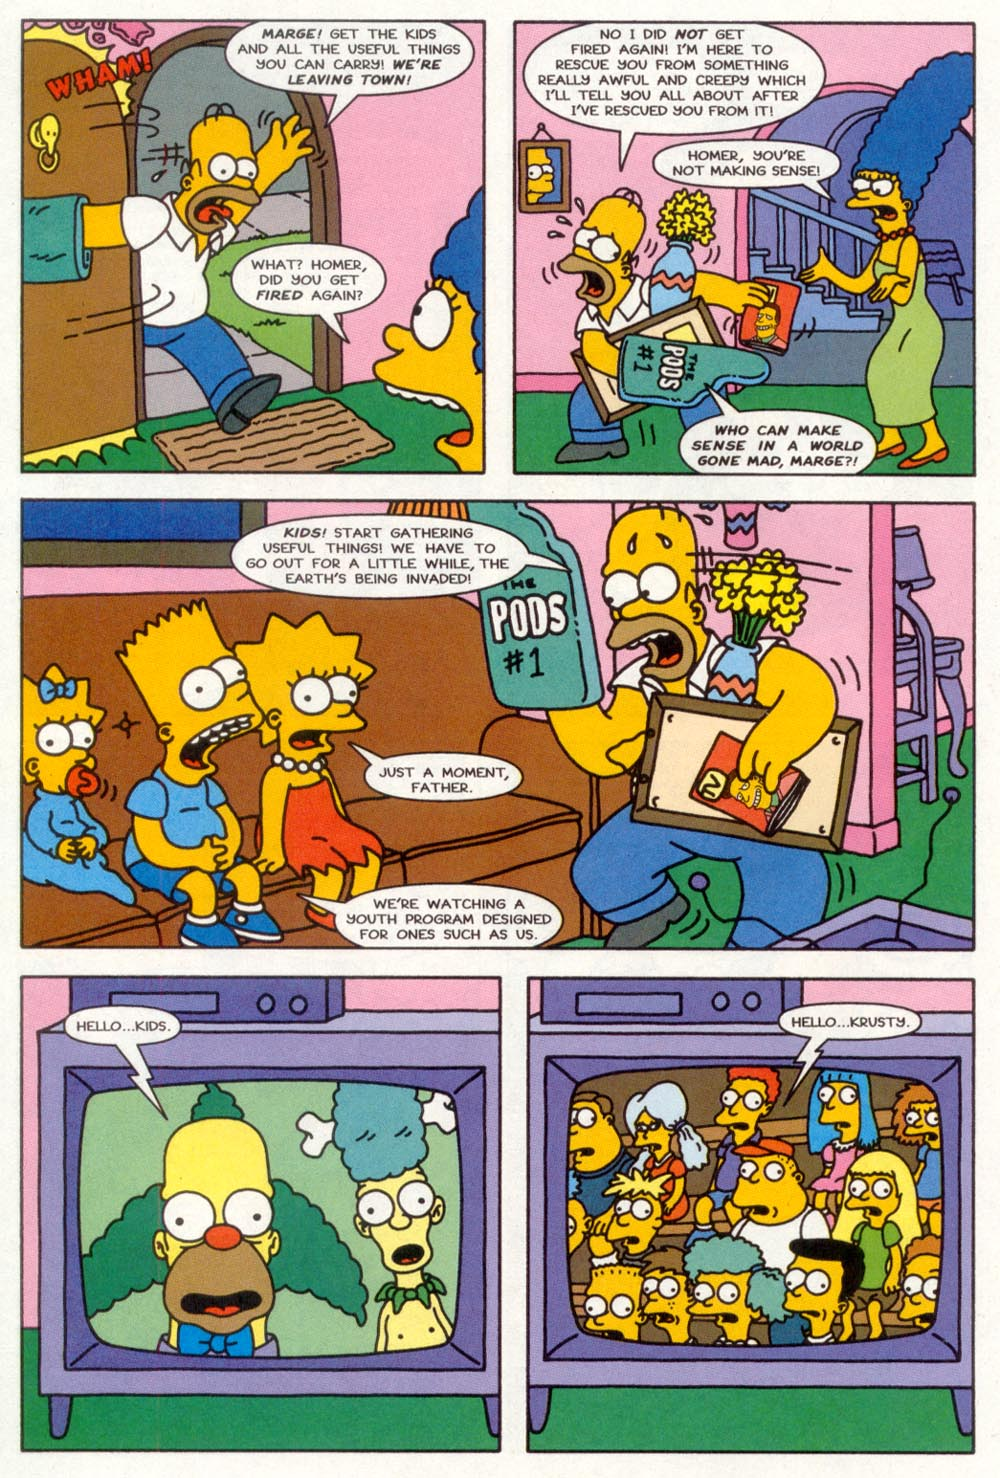 Read online Treehouse of Horror comic -  Issue #3 - 13